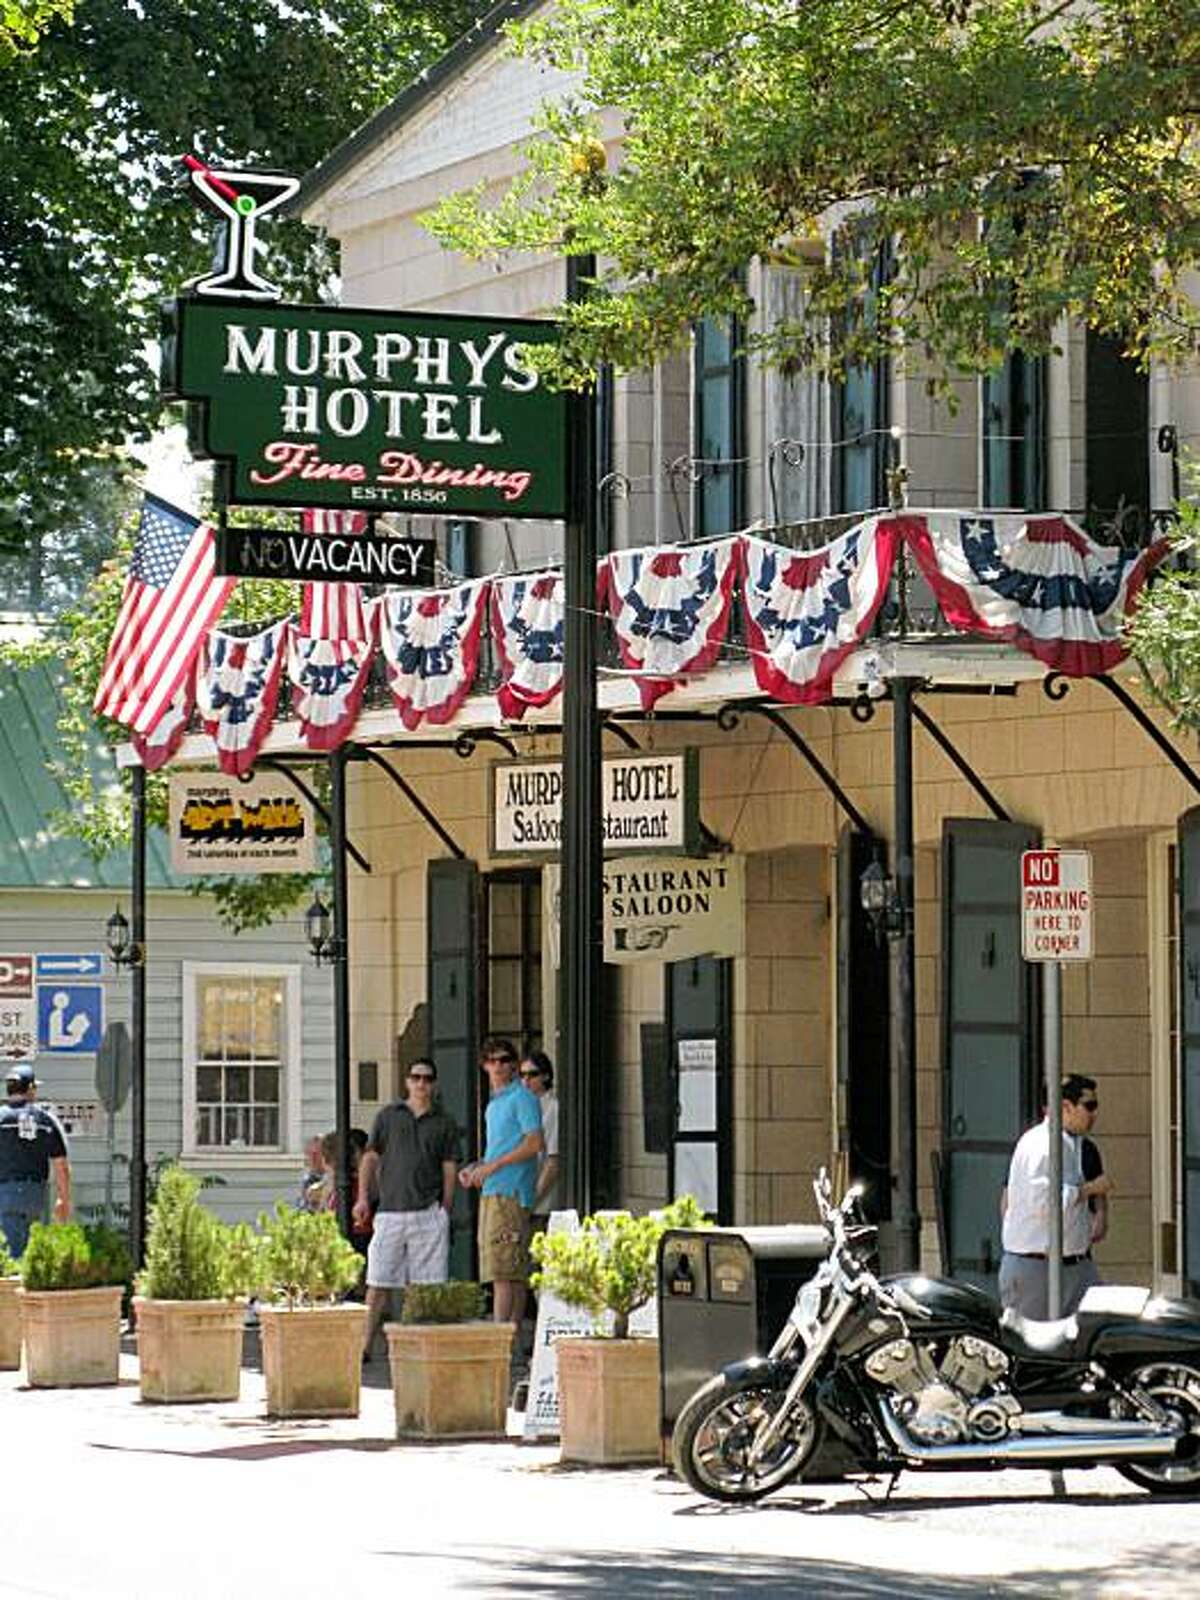 The Murphys Hotel in downtown Murphys, Calaveras Co.